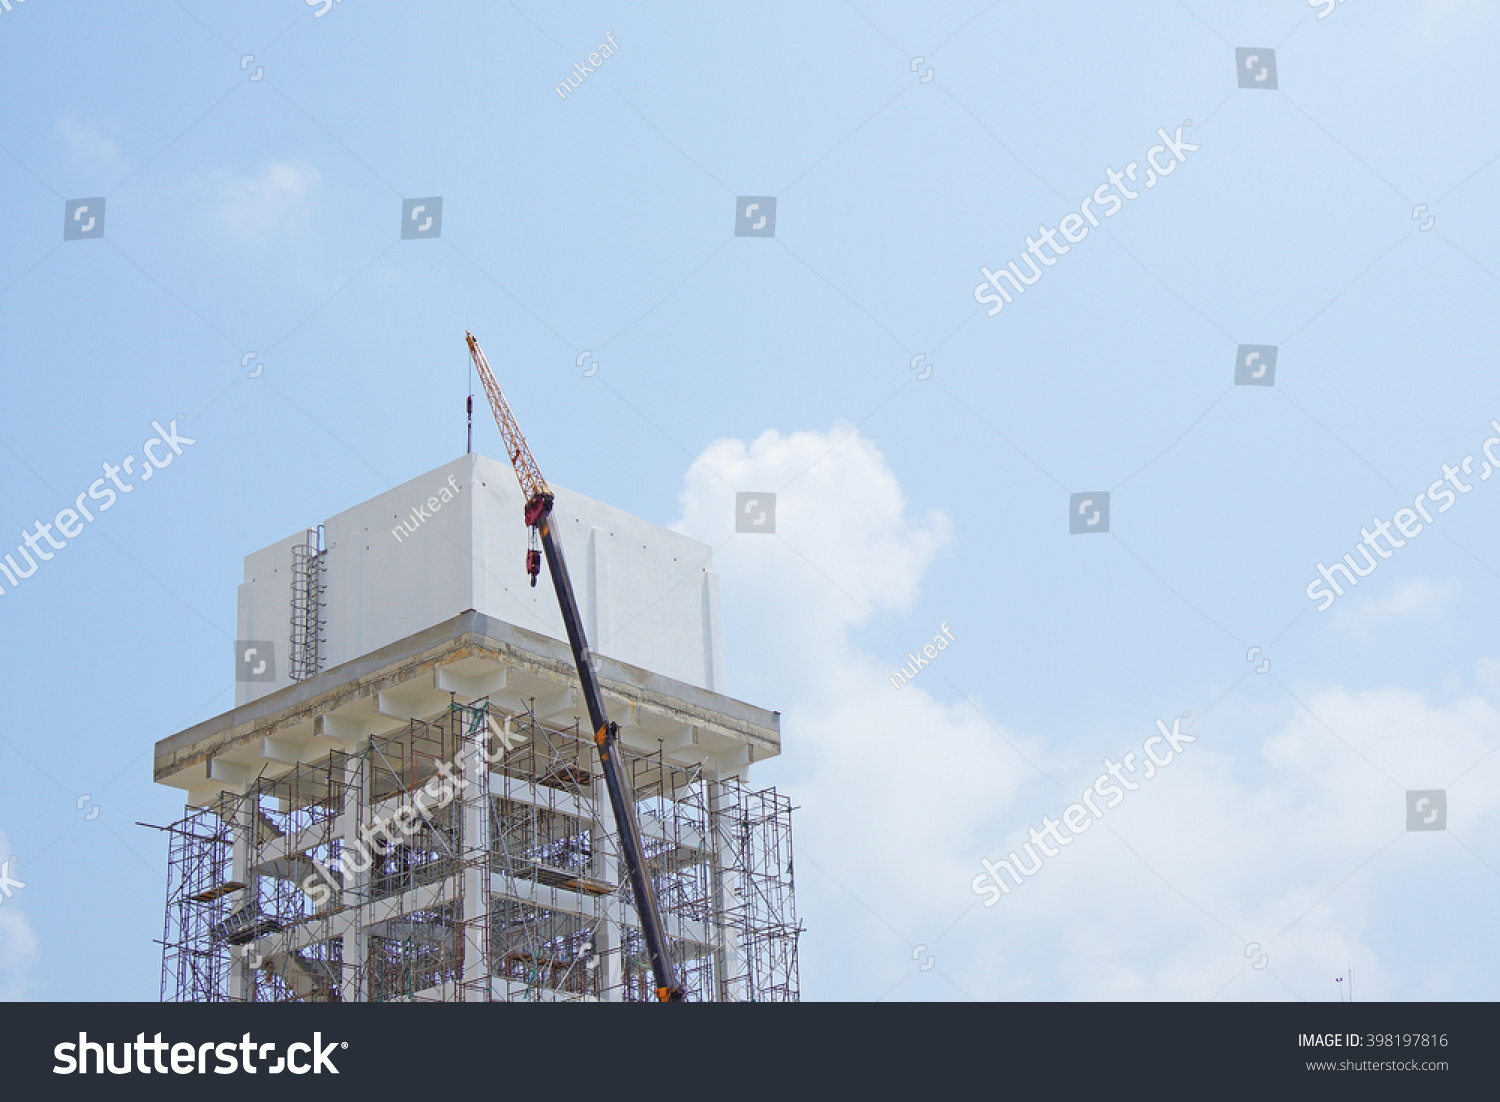 Elevated Water Tank Under Maintenance Stock Photo (Edit Now) 398197816